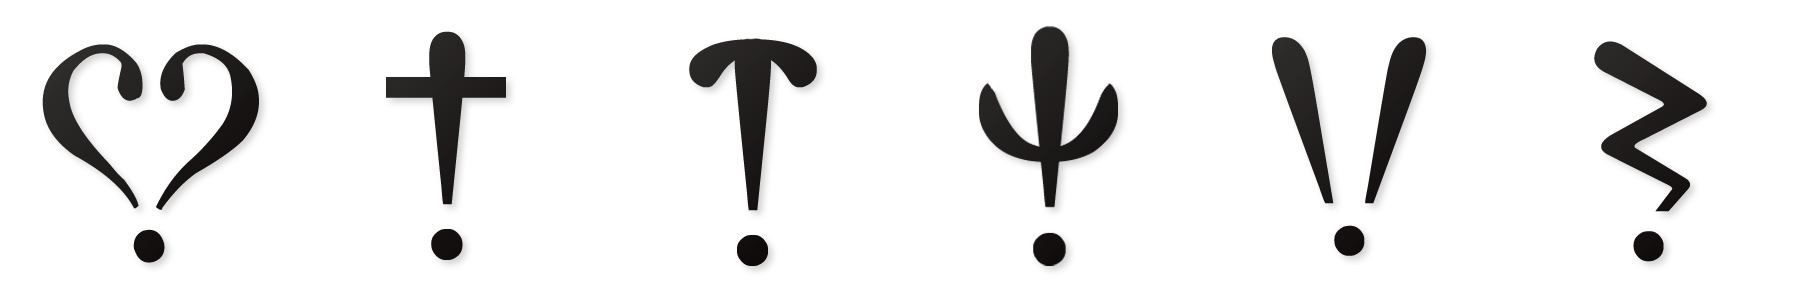 Braces clipart punctuation mark. Free pictures of marks